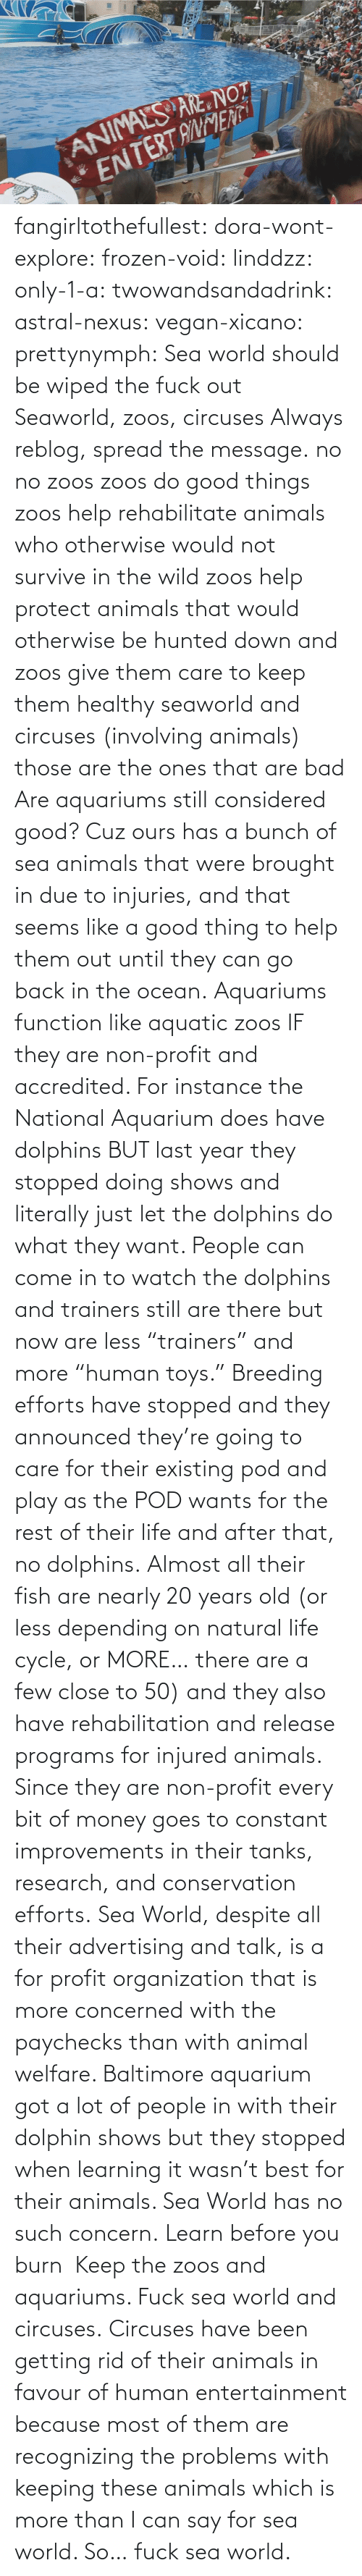 "Due To: fangirltothefullest:  dora-wont-explore:  frozen-void:  linddzz:  only-1-a:  twowandsandadrink:  astral-nexus:  vegan-xicano:  prettynymph:  Sea world should be wiped the fuck out  Seaworld, zoos, circuses  Always reblog, spread the message.  no no zoos zoos do good things zoos help rehabilitate animals who otherwise would not survive in the wild zoos help protect animals that would otherwise be hunted down and zoos give them care to keep them healthy seaworld and circuses (involving animals) those are the ones that are bad  Are aquariums still considered good? Cuz ours has a bunch of sea animals that were brought in due to injuries, and that seems like a good thing to help them out until they can go back in the ocean.  Aquariums function like aquatic zoos IF they are non-profit and accredited. For instance the National Aquarium does have dolphins BUT last year they stopped doing shows and literally just let the dolphins do what they want. People can come in to watch the dolphins and trainers still are there but now are less ""trainers"" and more ""human toys."" Breeding efforts have stopped and they announced they're going to care for their existing pod and play as the POD wants for the rest of their life and after that, no dolphins. Almost all their fish are nearly 20 years old (or less depending on natural life cycle, or MORE… there are a few close to 50) and they also have rehabilitation and release programs for injured animals. Since they are non-profit every bit of money goes to constant improvements in their tanks, research, and conservation efforts. Sea World, despite all their advertising and talk, is a for profit organization that is more concerned with the paychecks than with animal welfare. Baltimore aquarium got a lot of people in with their dolphin shows but they stopped when learning it wasn't best for their animals. Sea World has no such concern.  Learn before you burn   Keep the zoos and aquariums. Fuck sea world and circuses.  Circuses have been getting rid of  their animals in favour of human entertainment because most of them are recognizing the problems with keeping these animals which is more than I can say for sea world. So… fuck sea world."